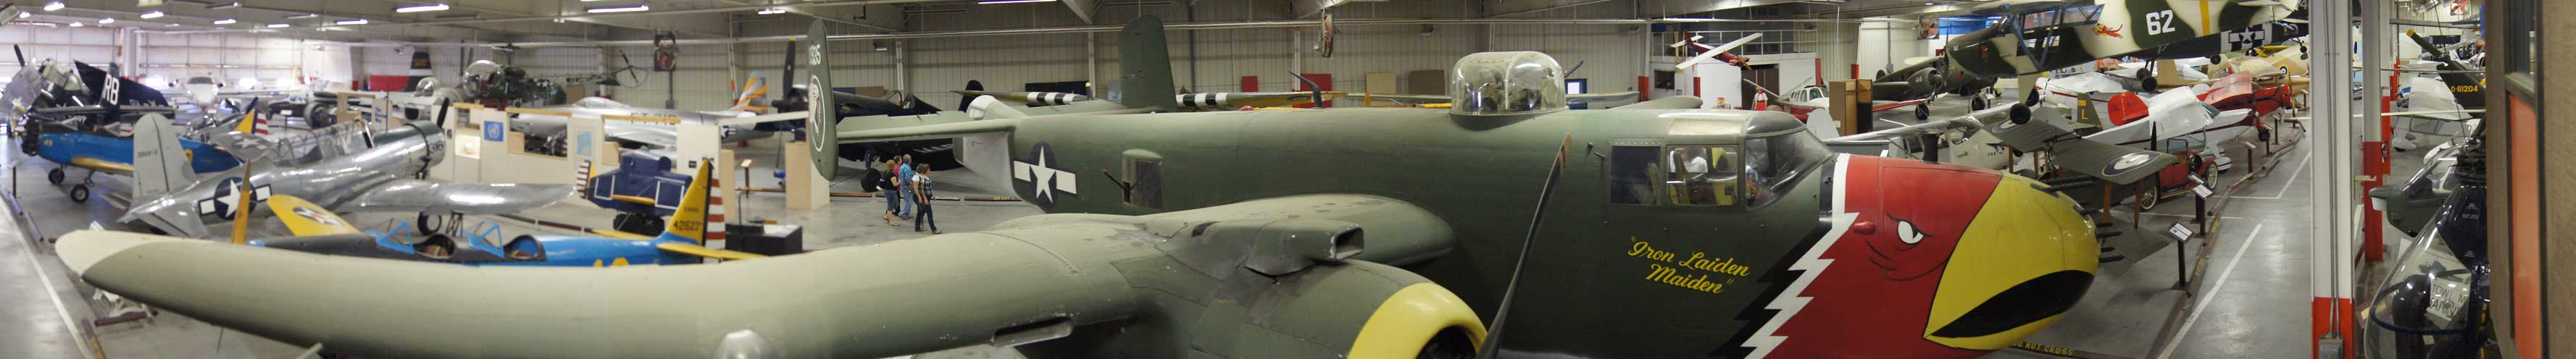 Panoramic view of the Air Museum